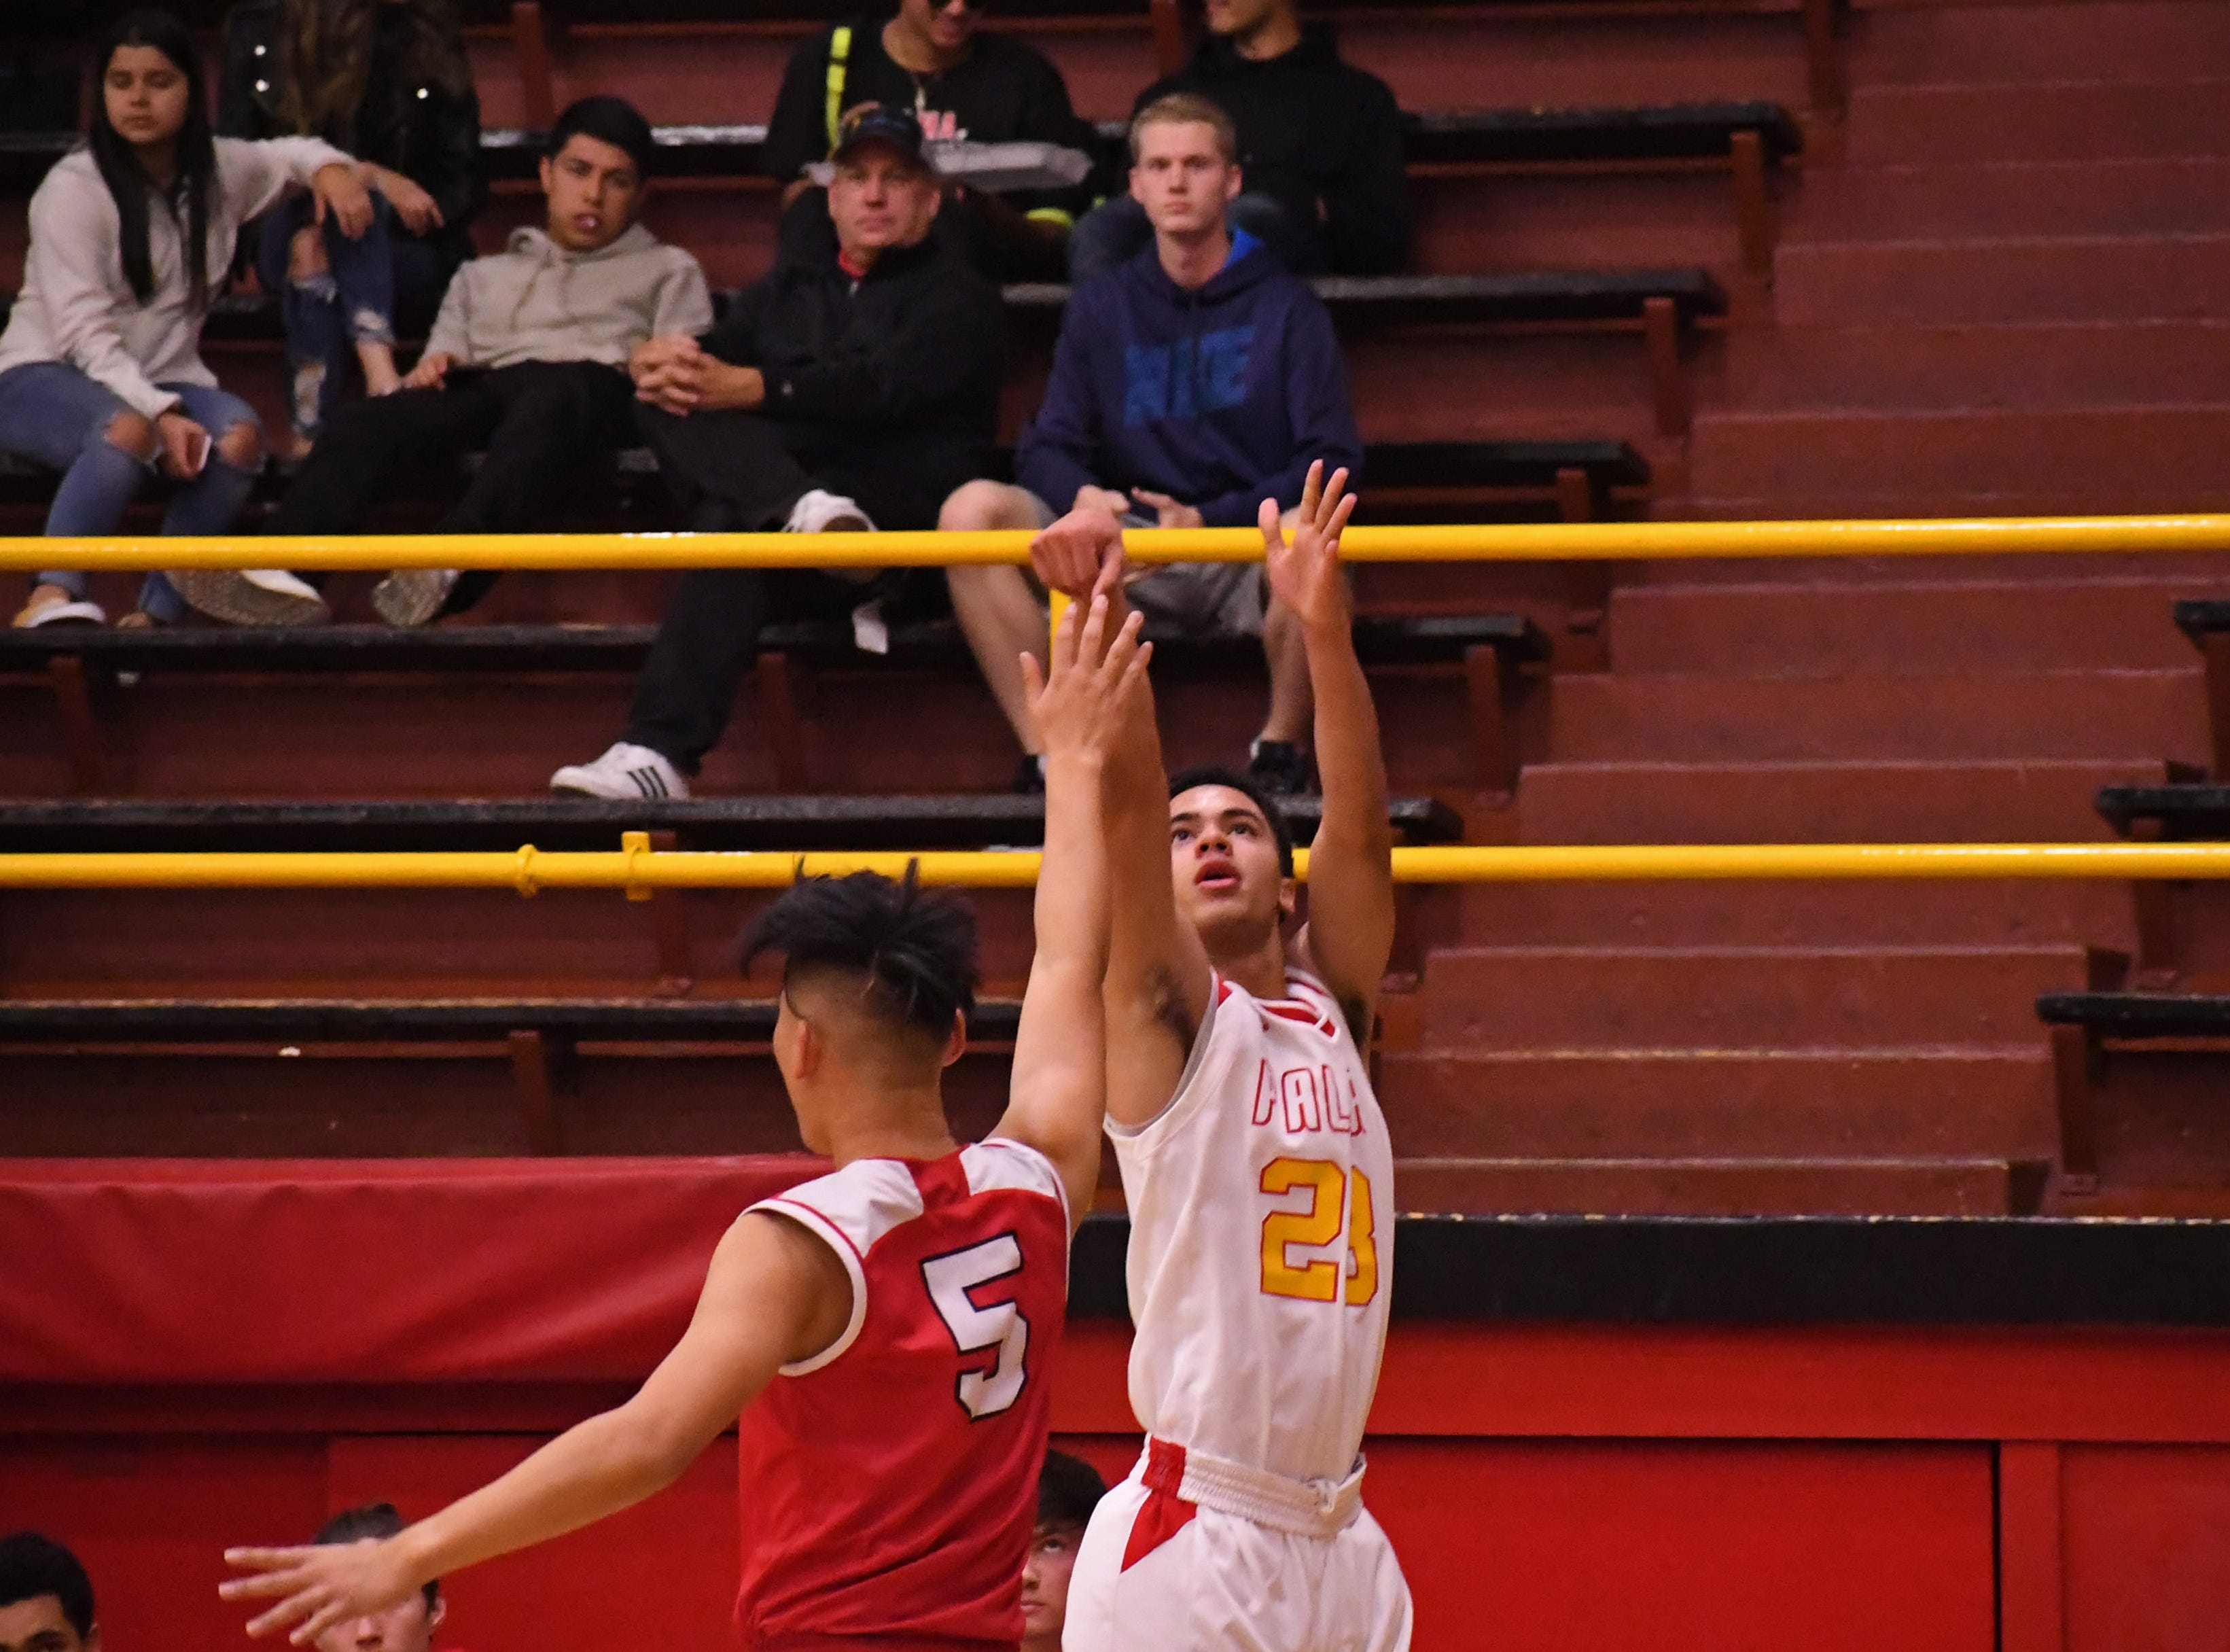 Palma forward Brenden Cannon (23) lets loose a 3-pointer from the left baseline.